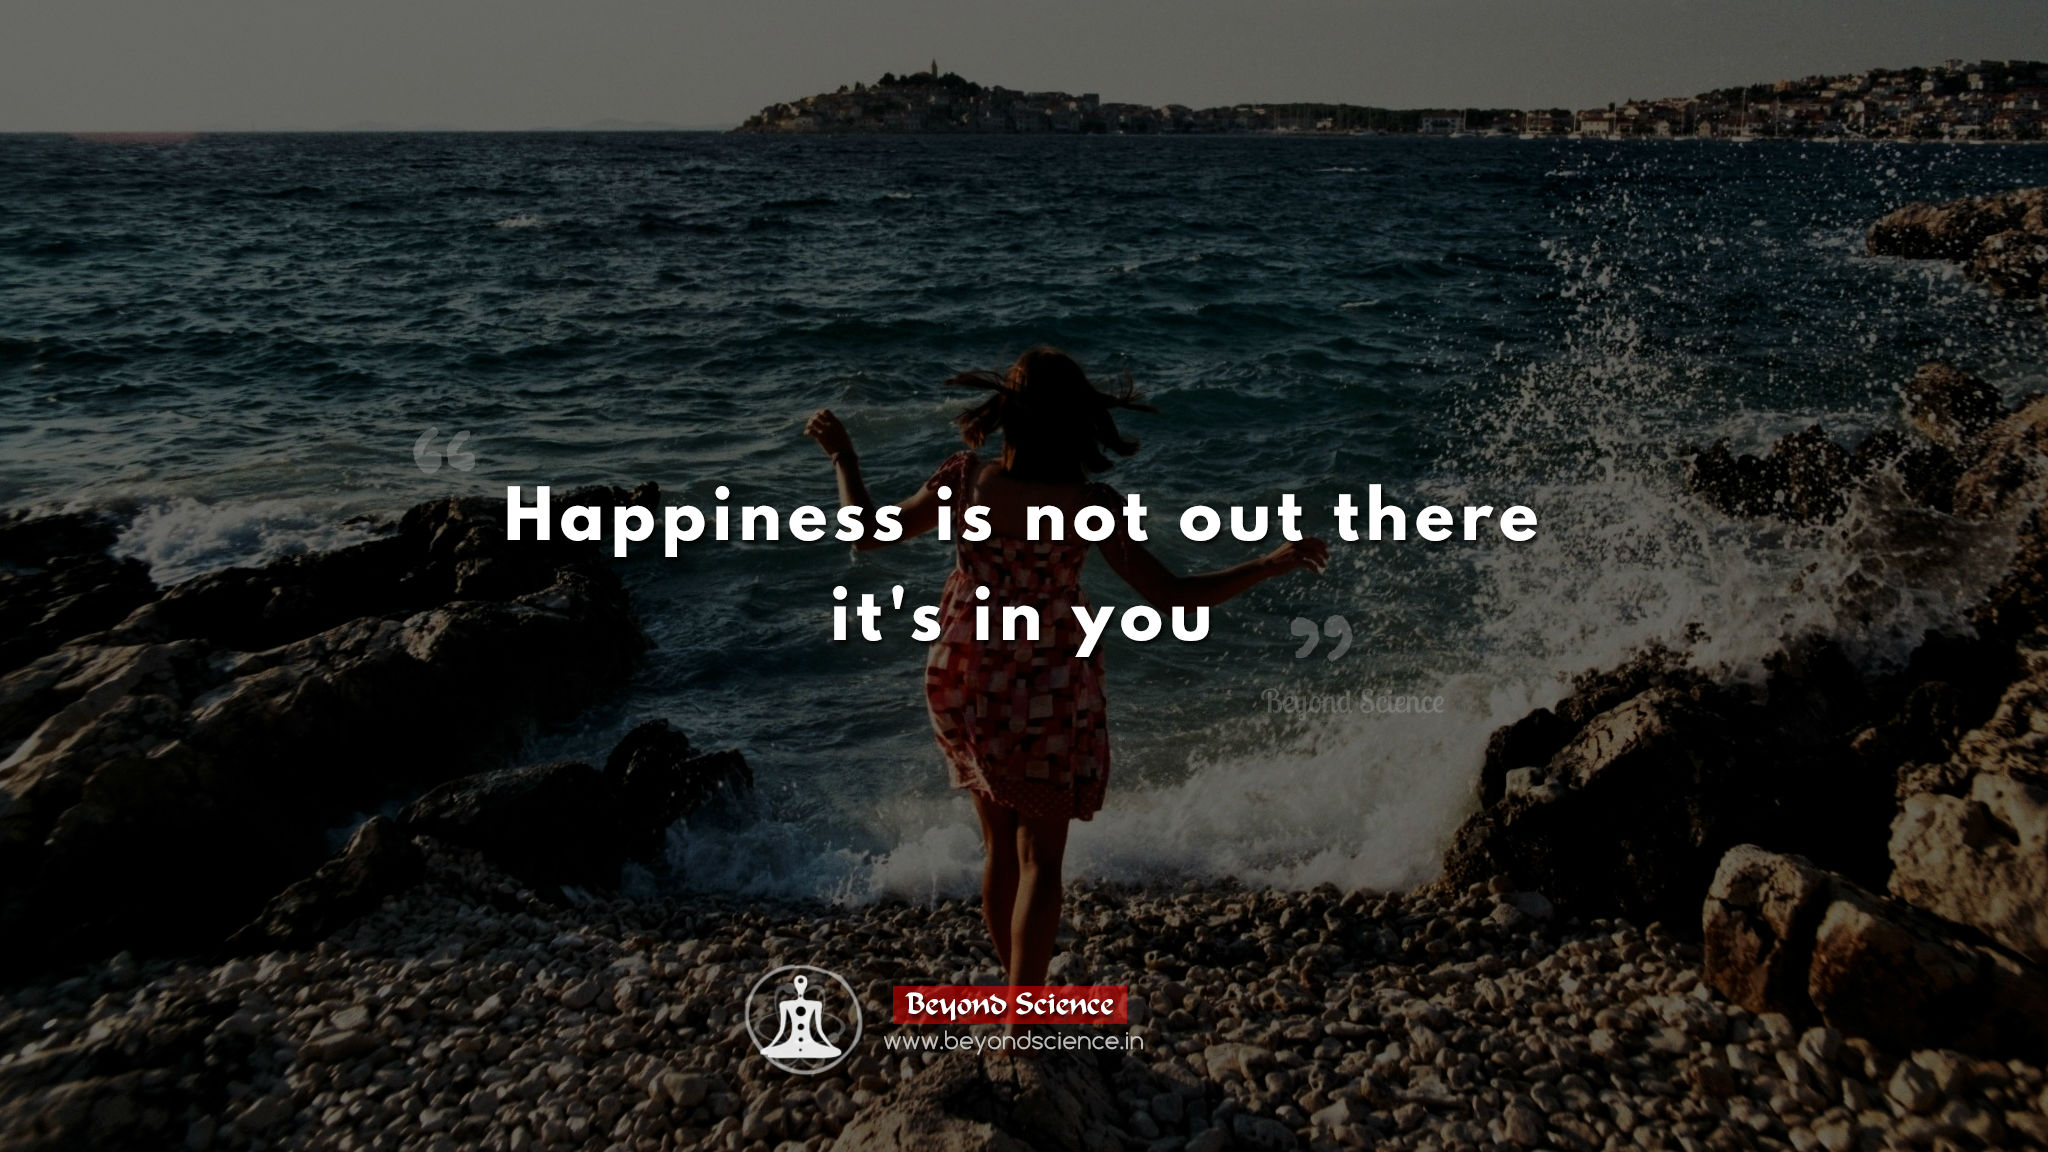 Happiness is not out there, it's in you